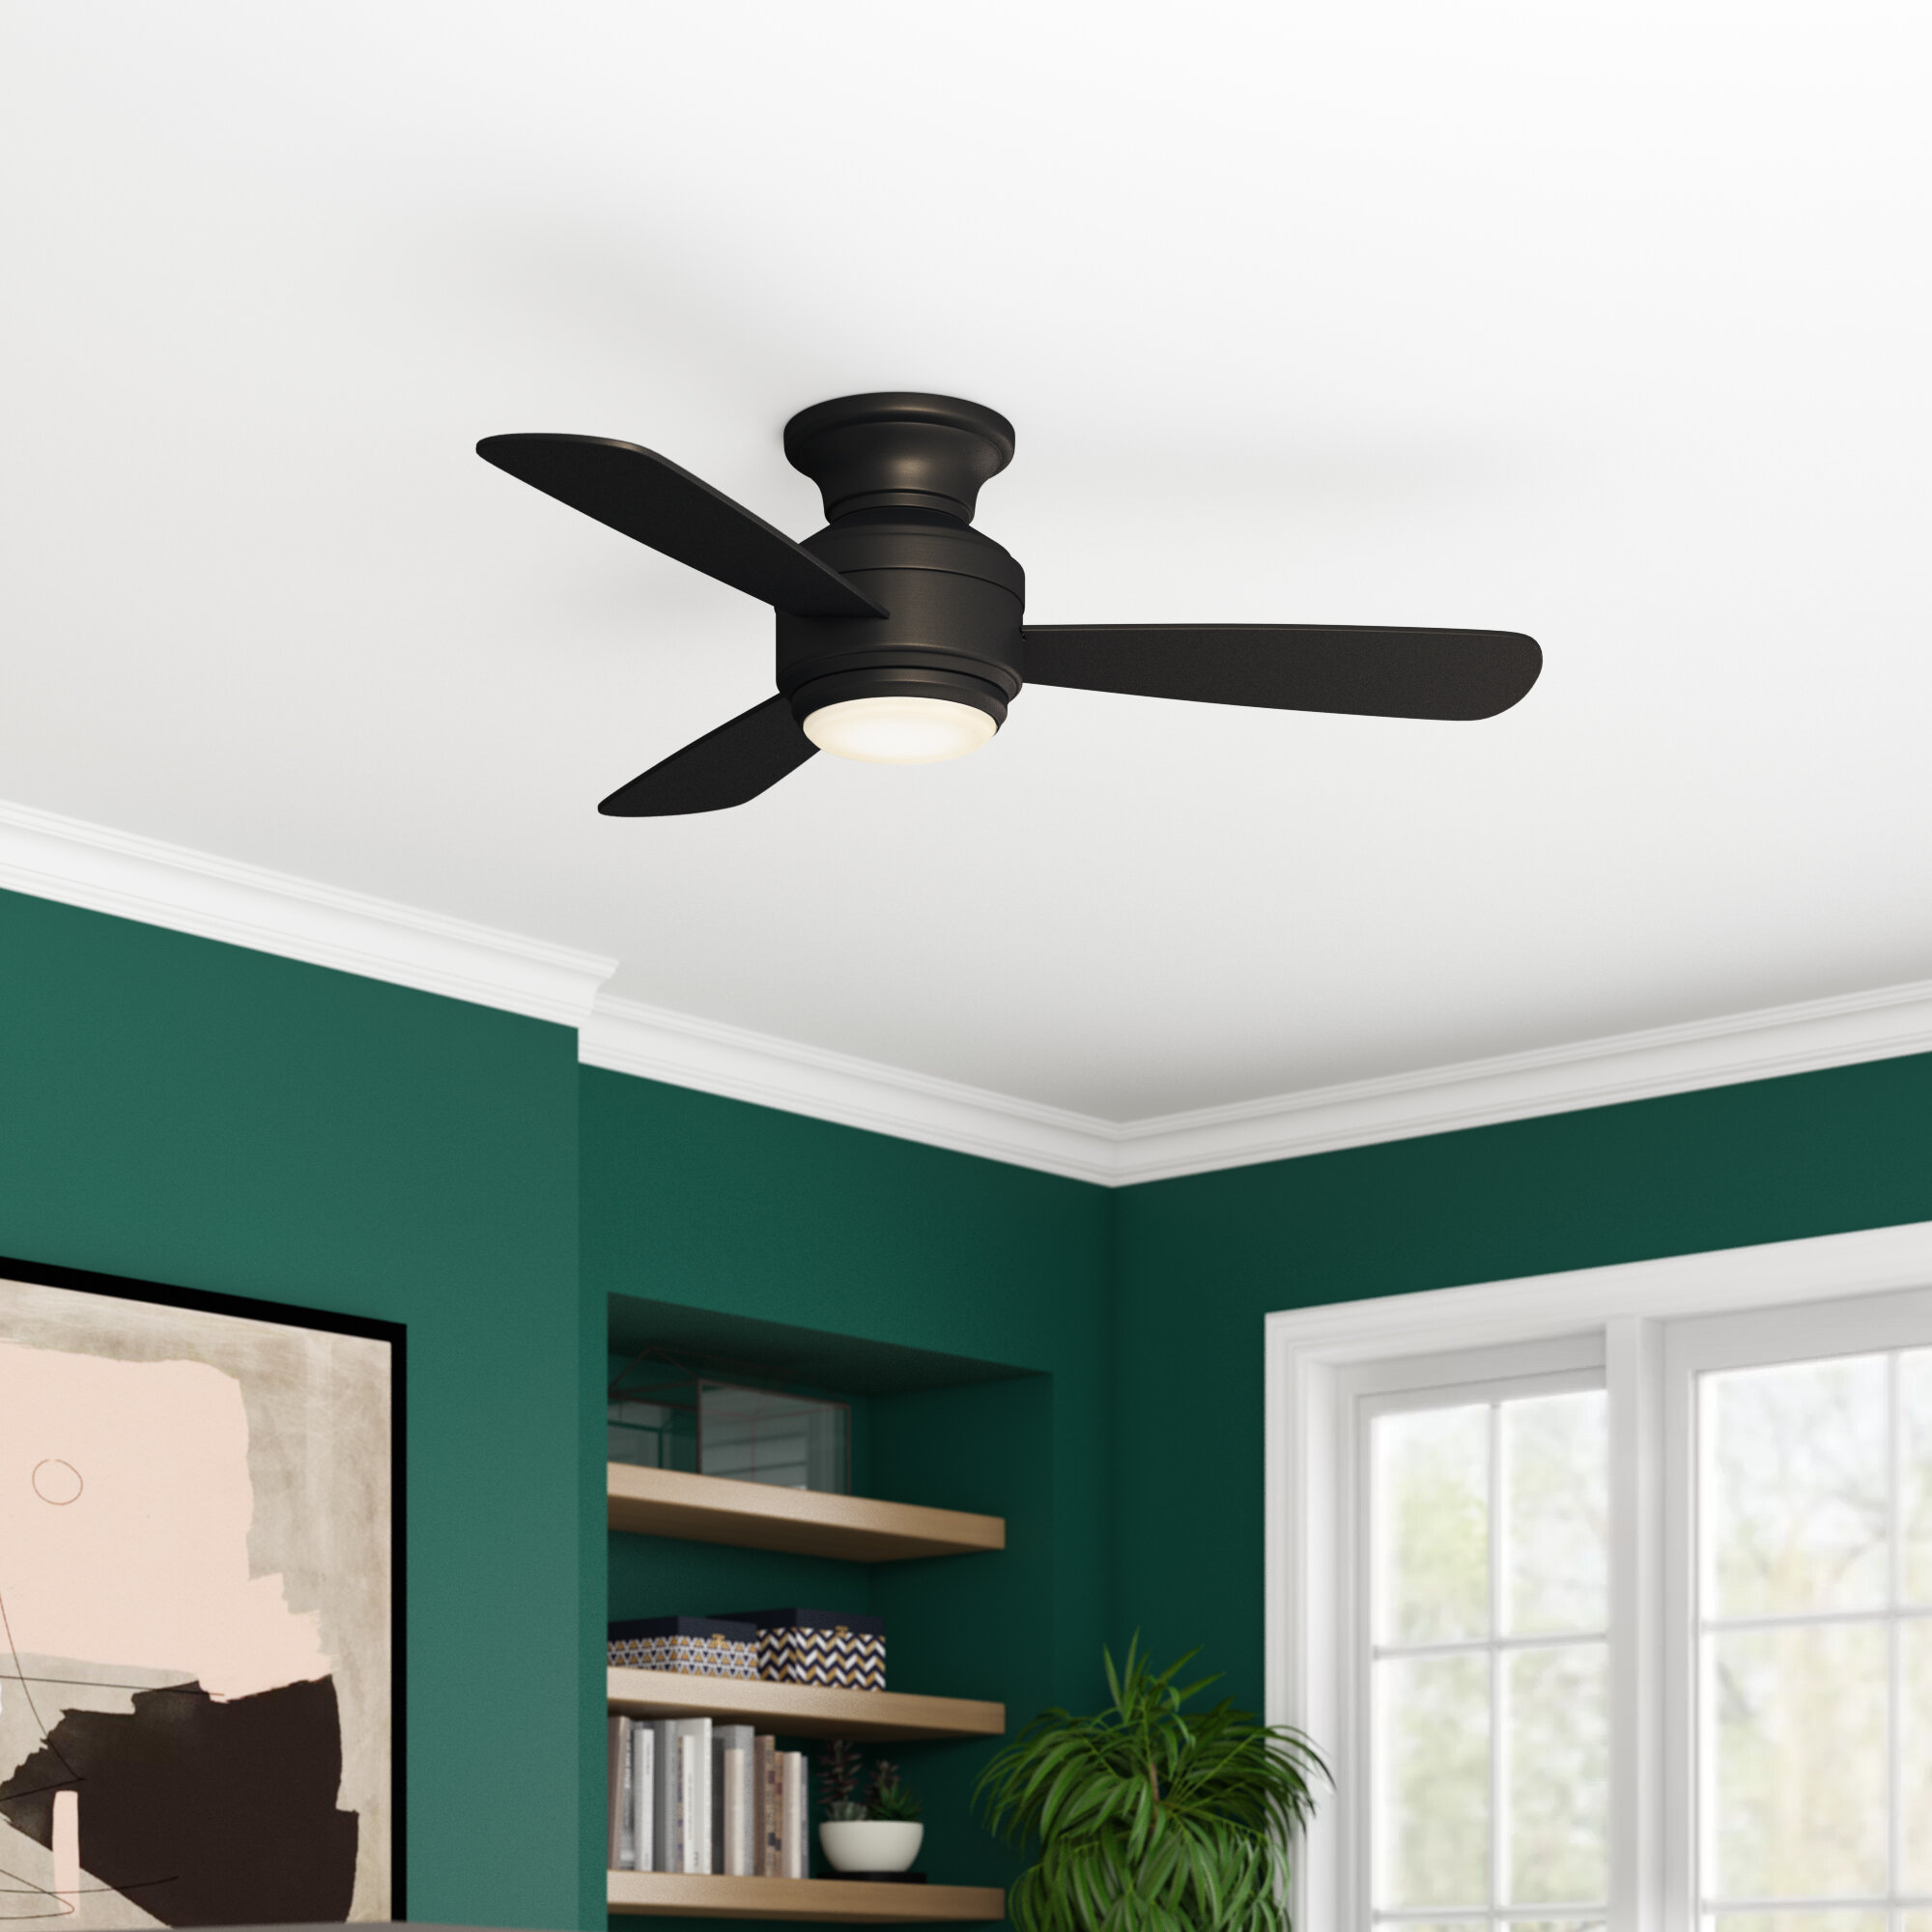 Image of: Brayden Studio 44 Lasky 3 Blade Standard Ceiling Fan With Wall Control And Light Kit Included Reviews Wayfair